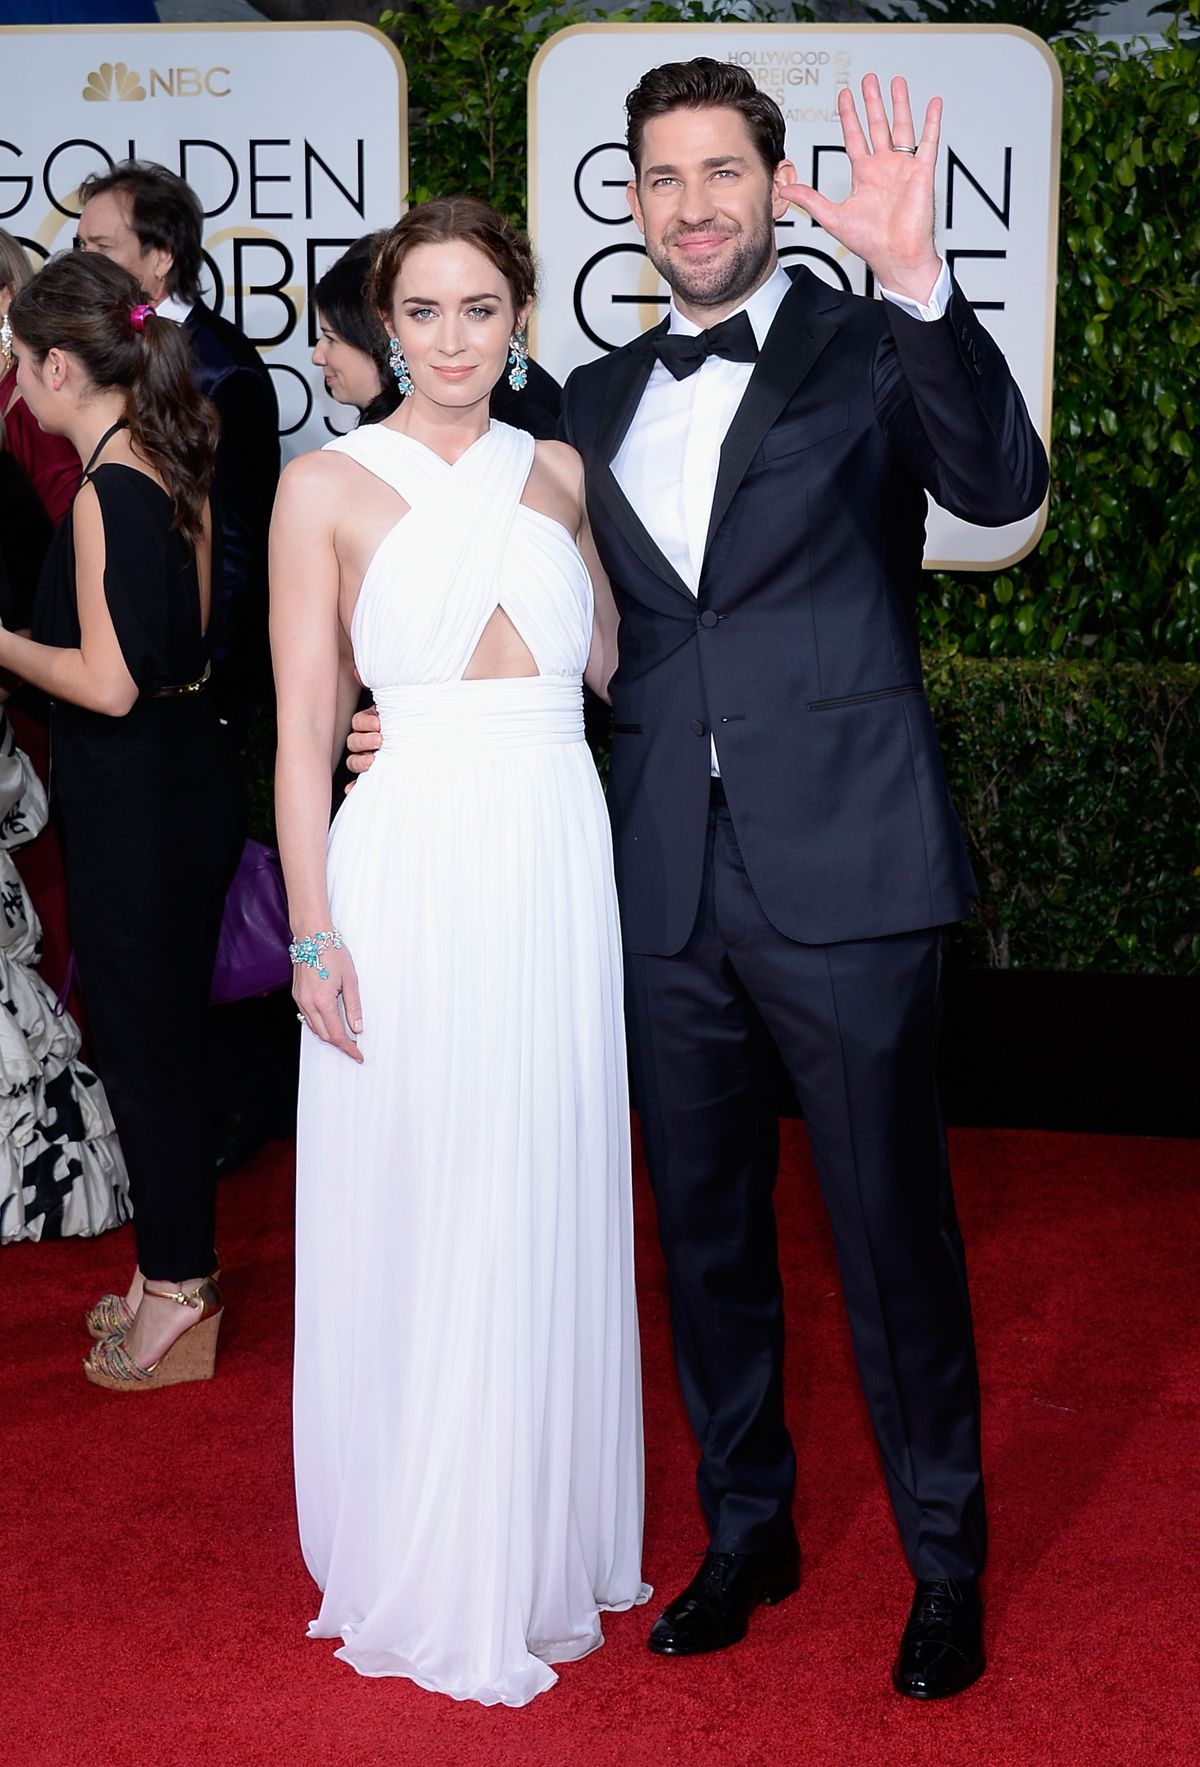 Emily Blunt and John Krasinski at 2015 Golden Globes